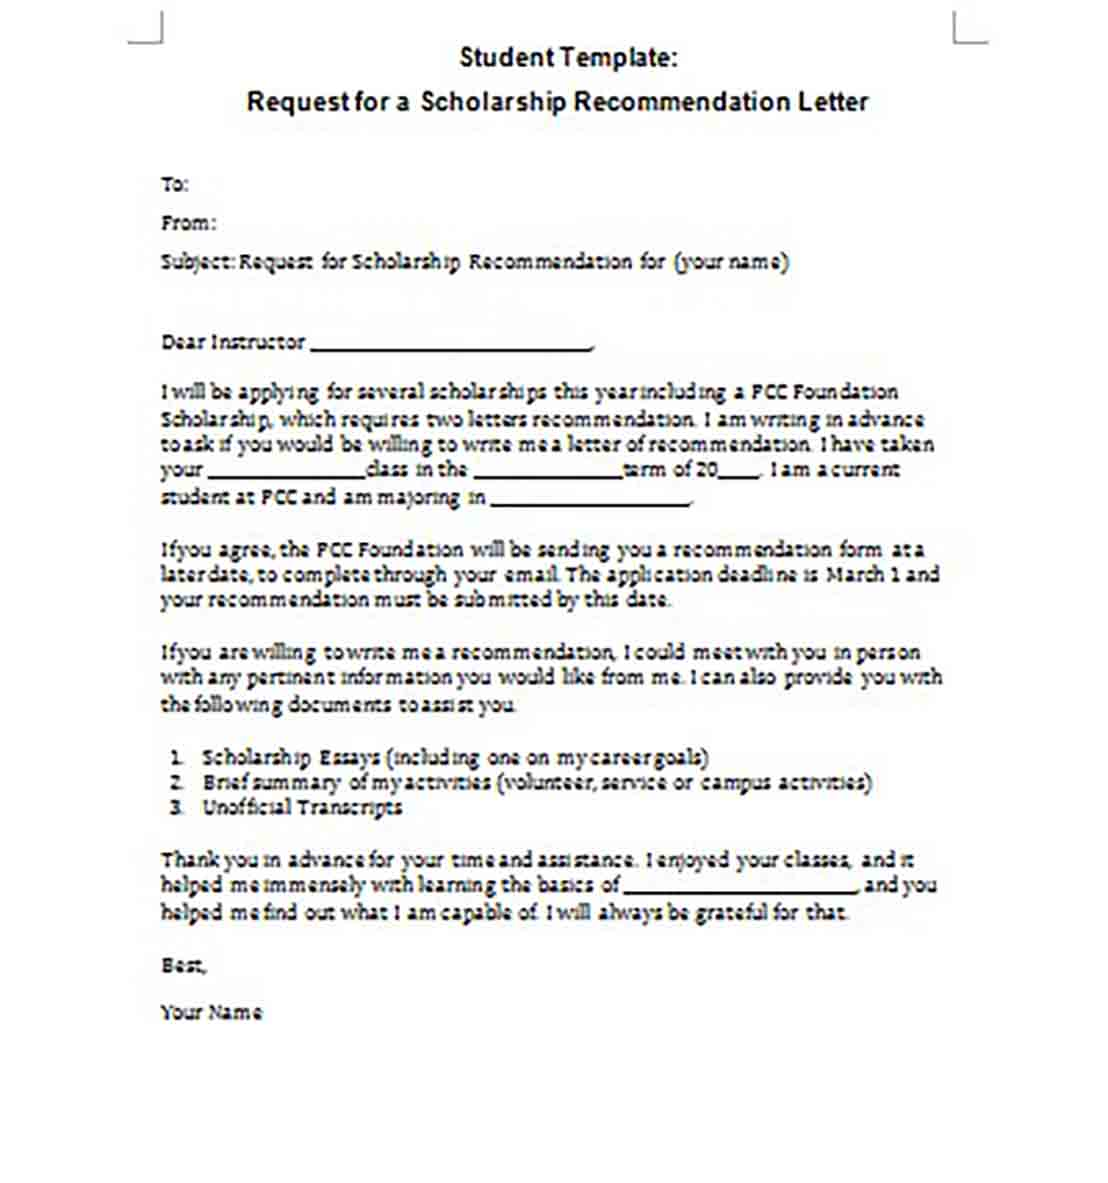 Student Scholarship Recommendation Letter